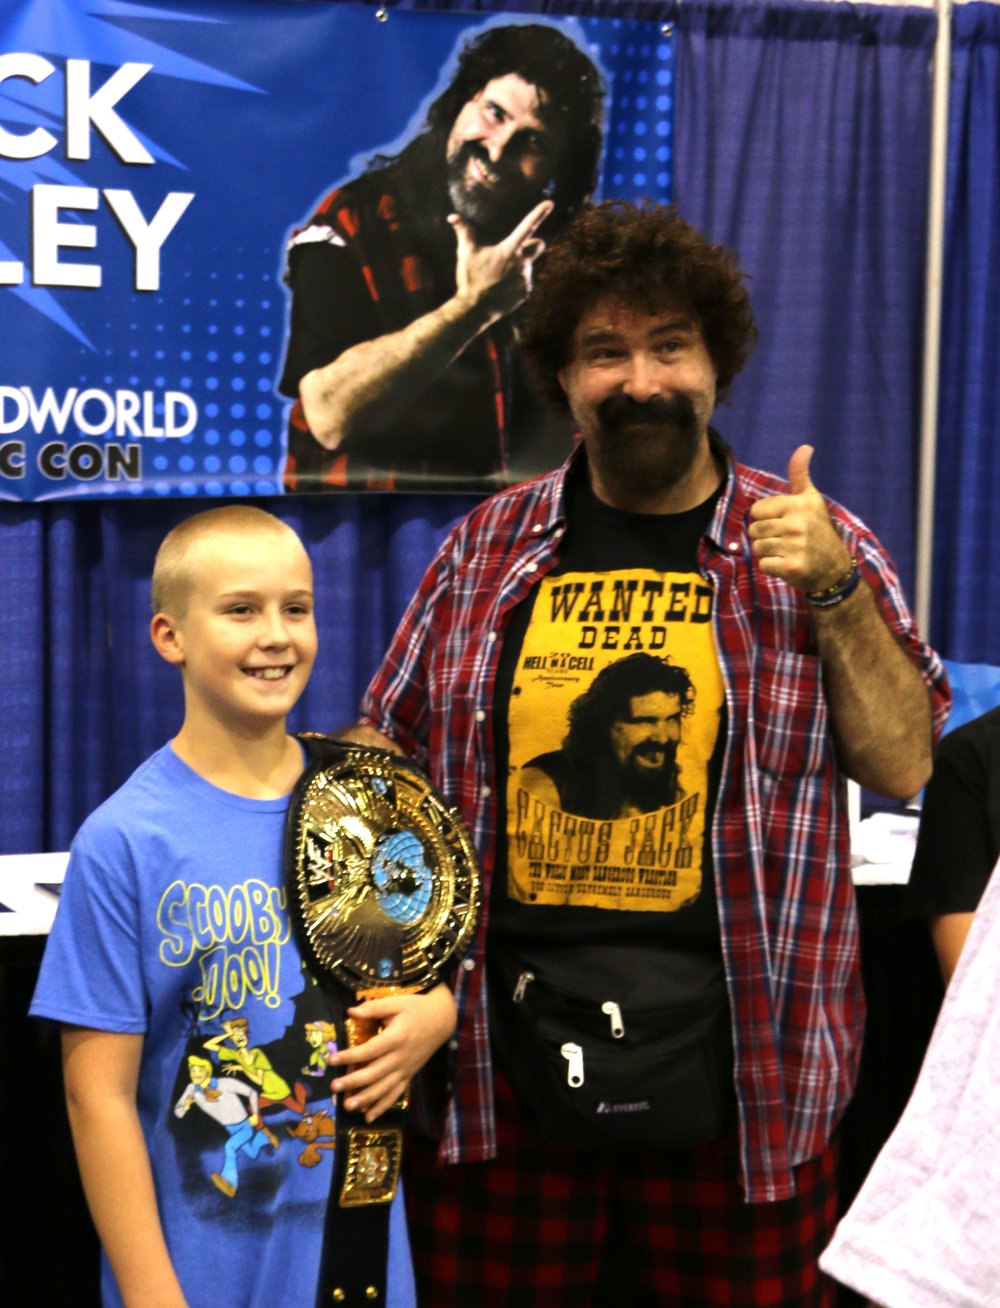 WWE Hall of Famer Mick Foley, right, poses for a picture with a young fan at Wizard World Chicago on Friday, August 24, 2018.  (Photo by Mike Pankow)